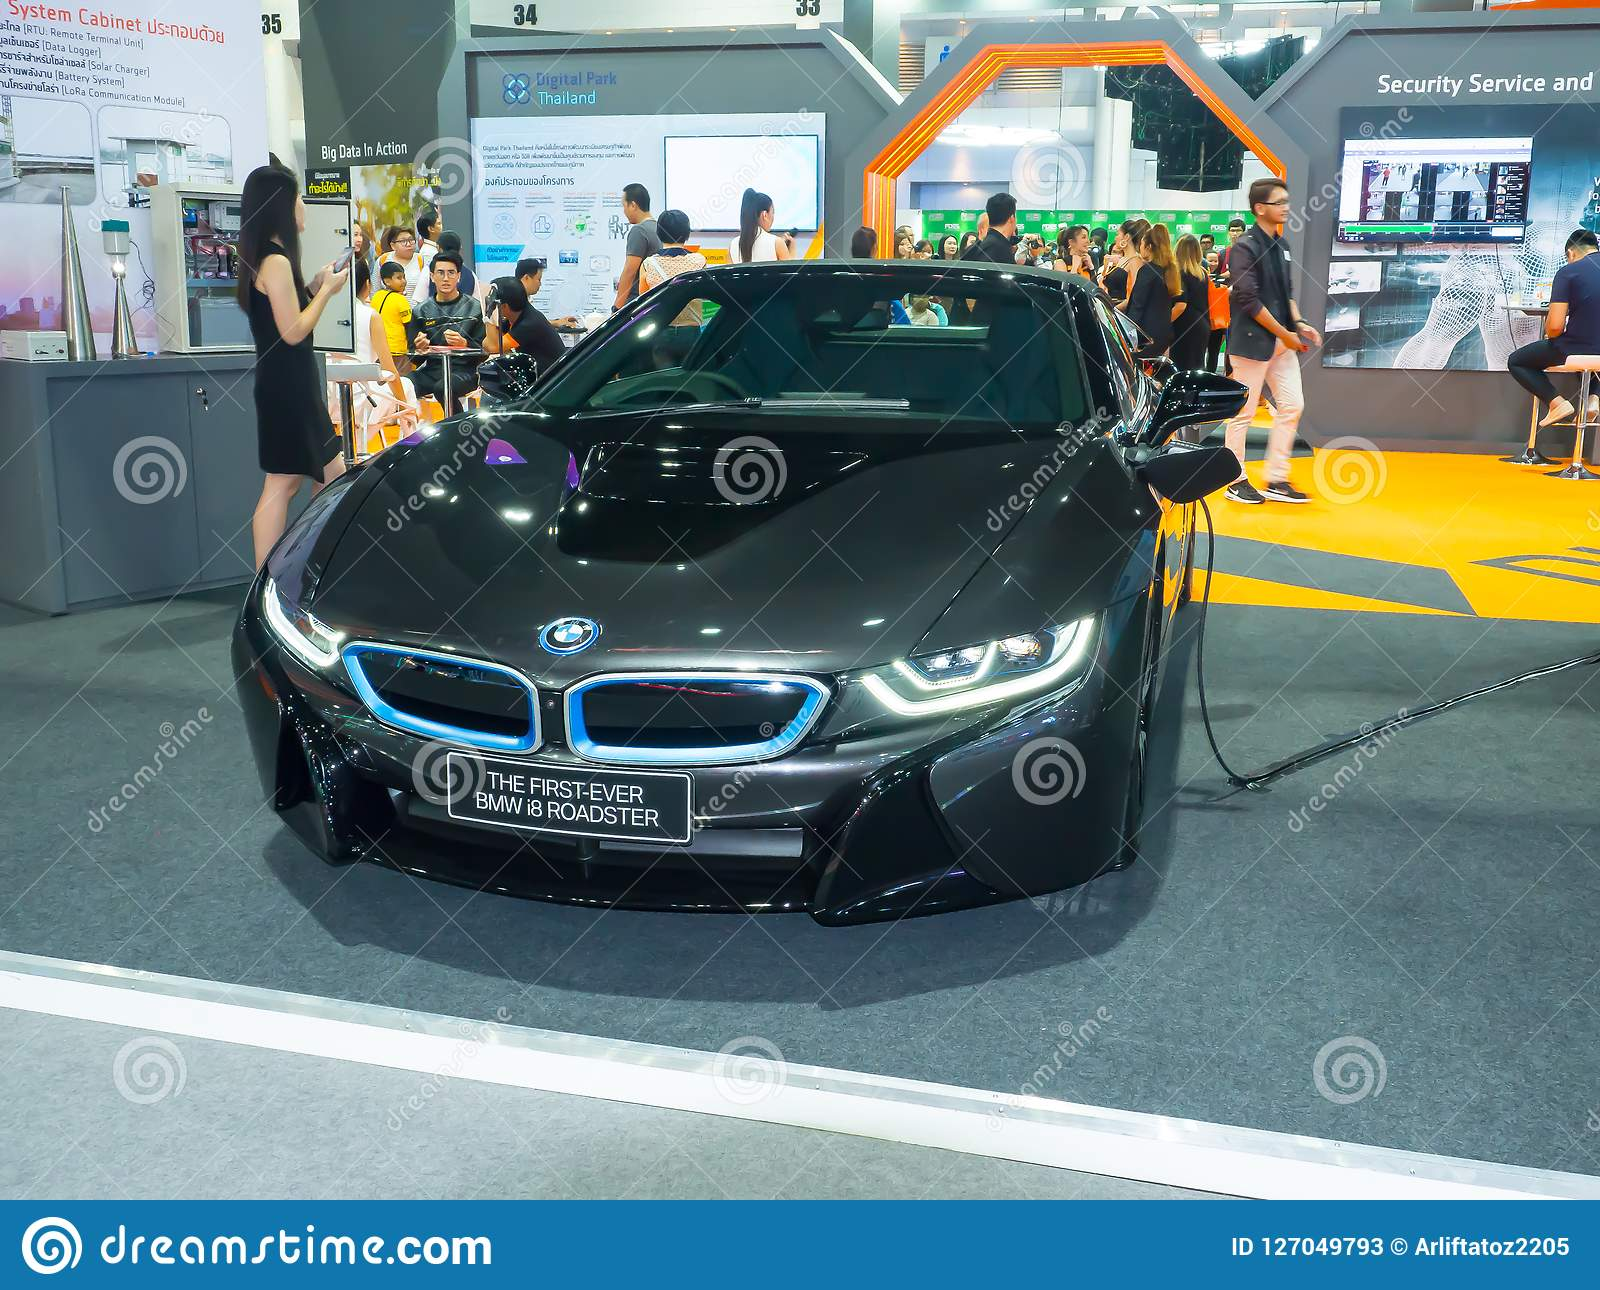 The Bmw I8 Is A Plug In Hybrid Sports Car Developed By Bmw In Black Color Display At Exhibition Hall Editorial Stock Photo Image Of Energy Environmental 127049793